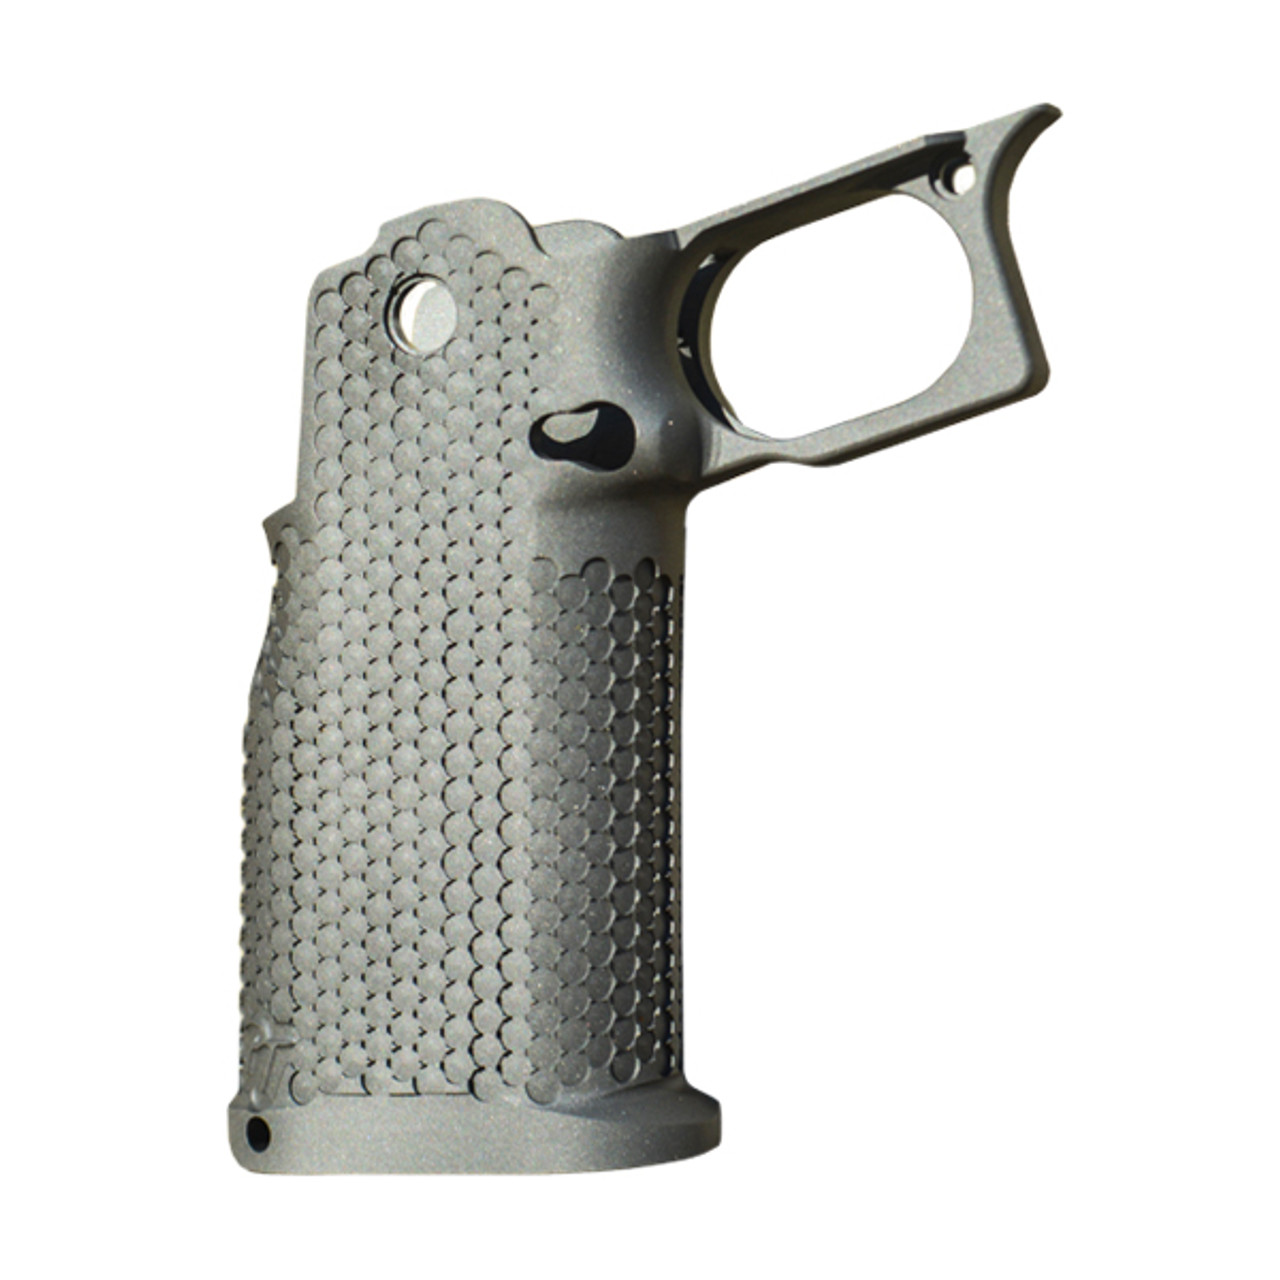 Phoenix Trinity 2011 EVO Grip w/ Mag Release Double Undercut Trigger Guard (Aggressive Texture) 17-4 Stainless